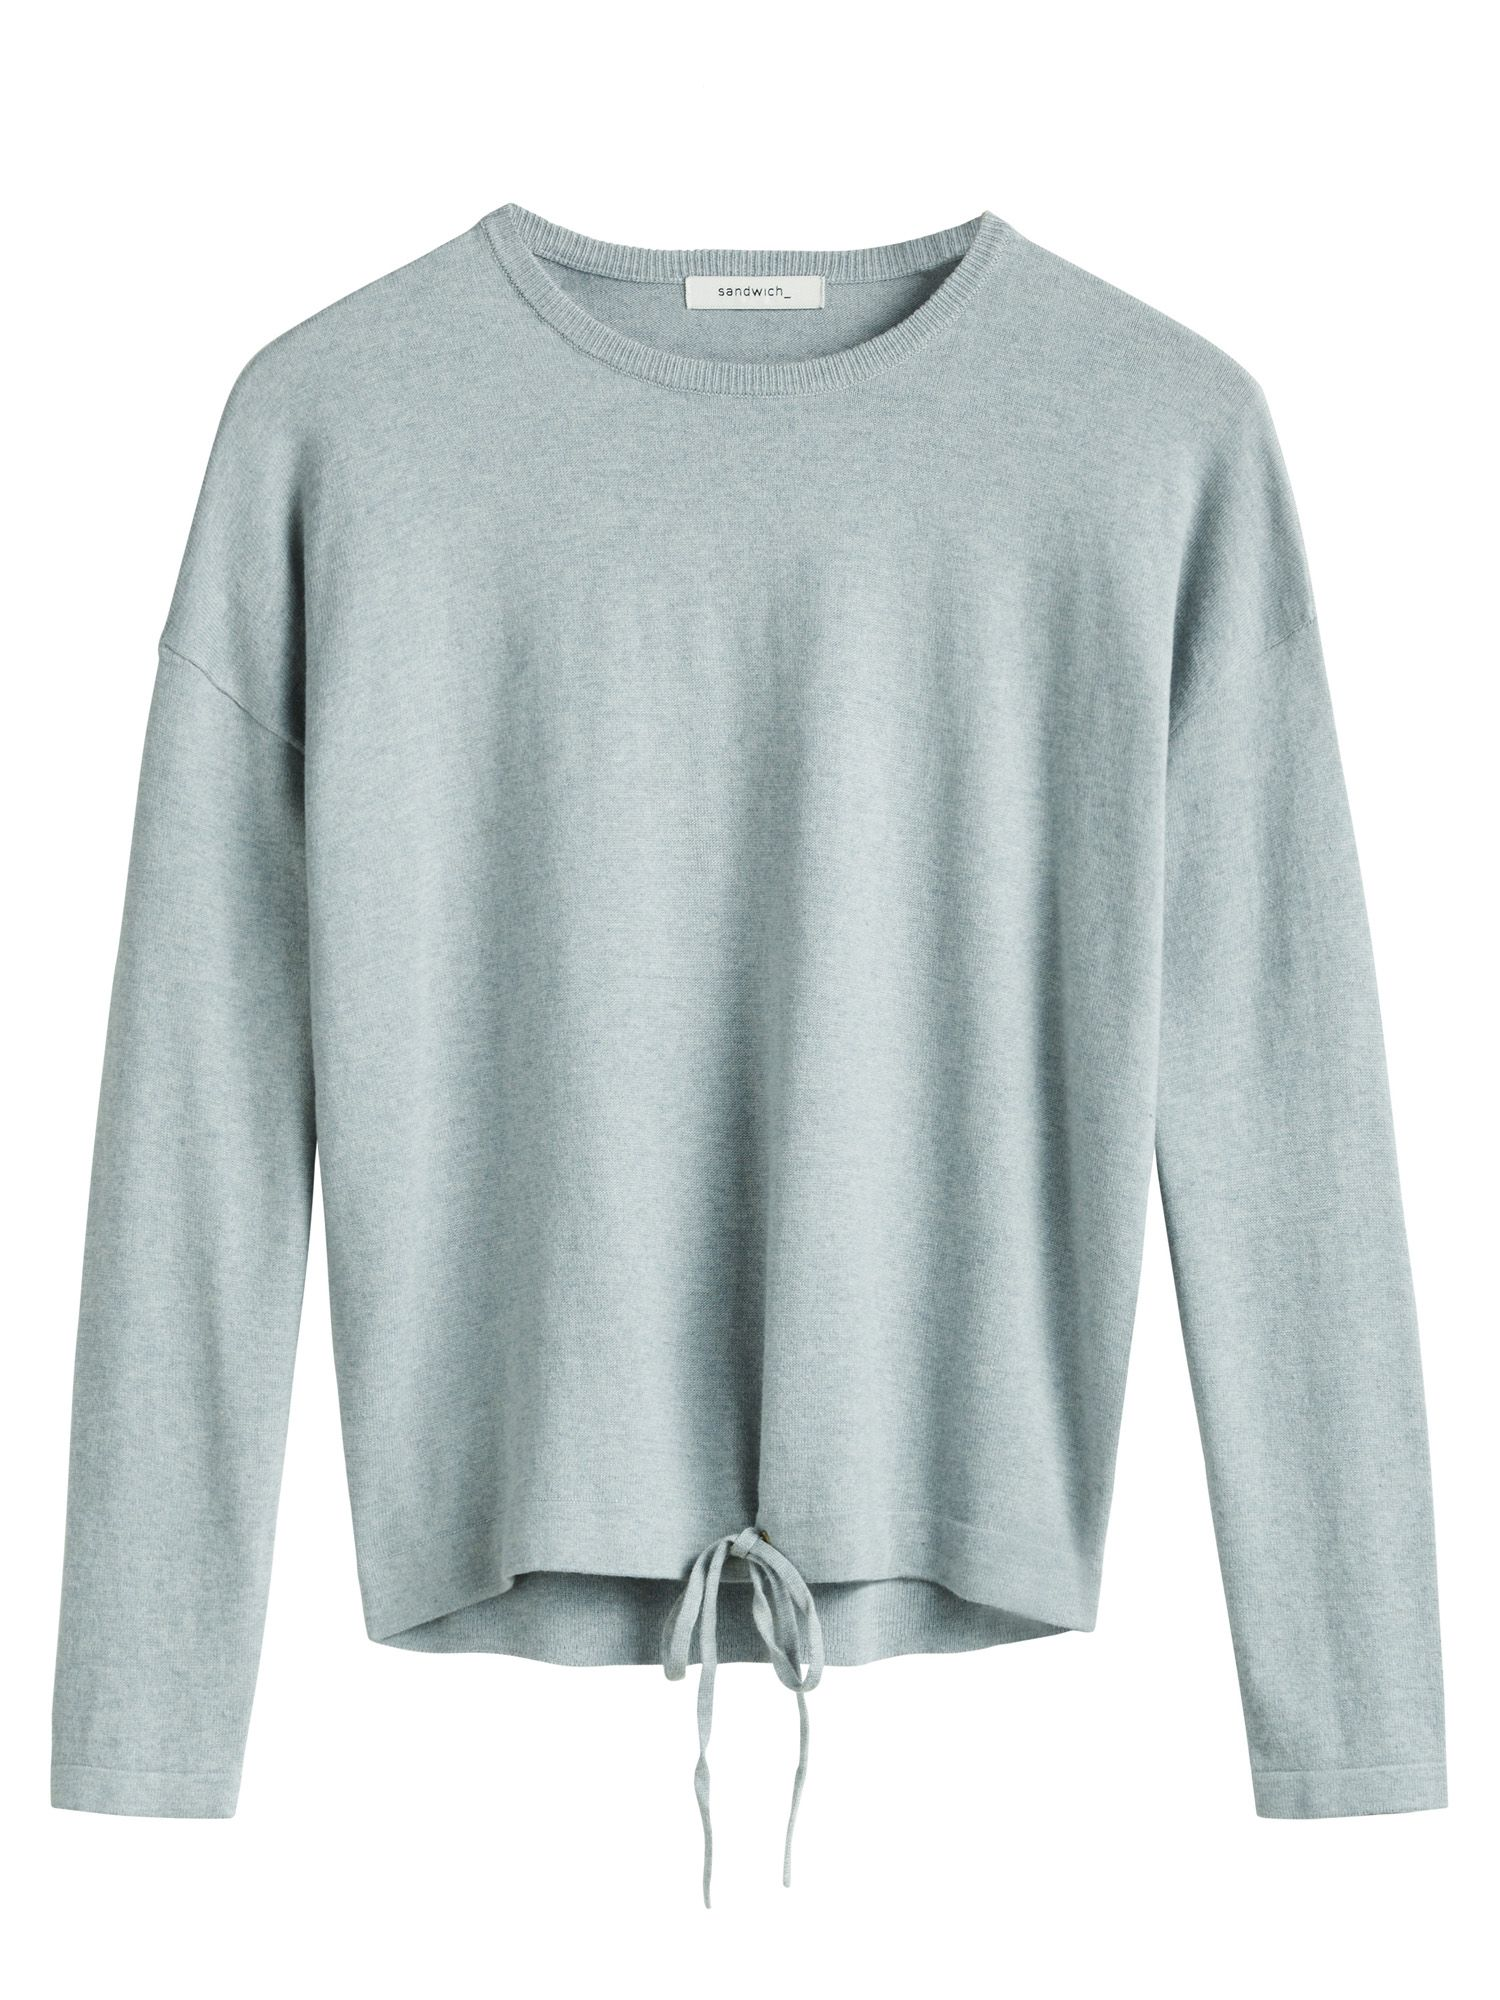 Sandwich Sandwich Drawstring detail jumper, Grey